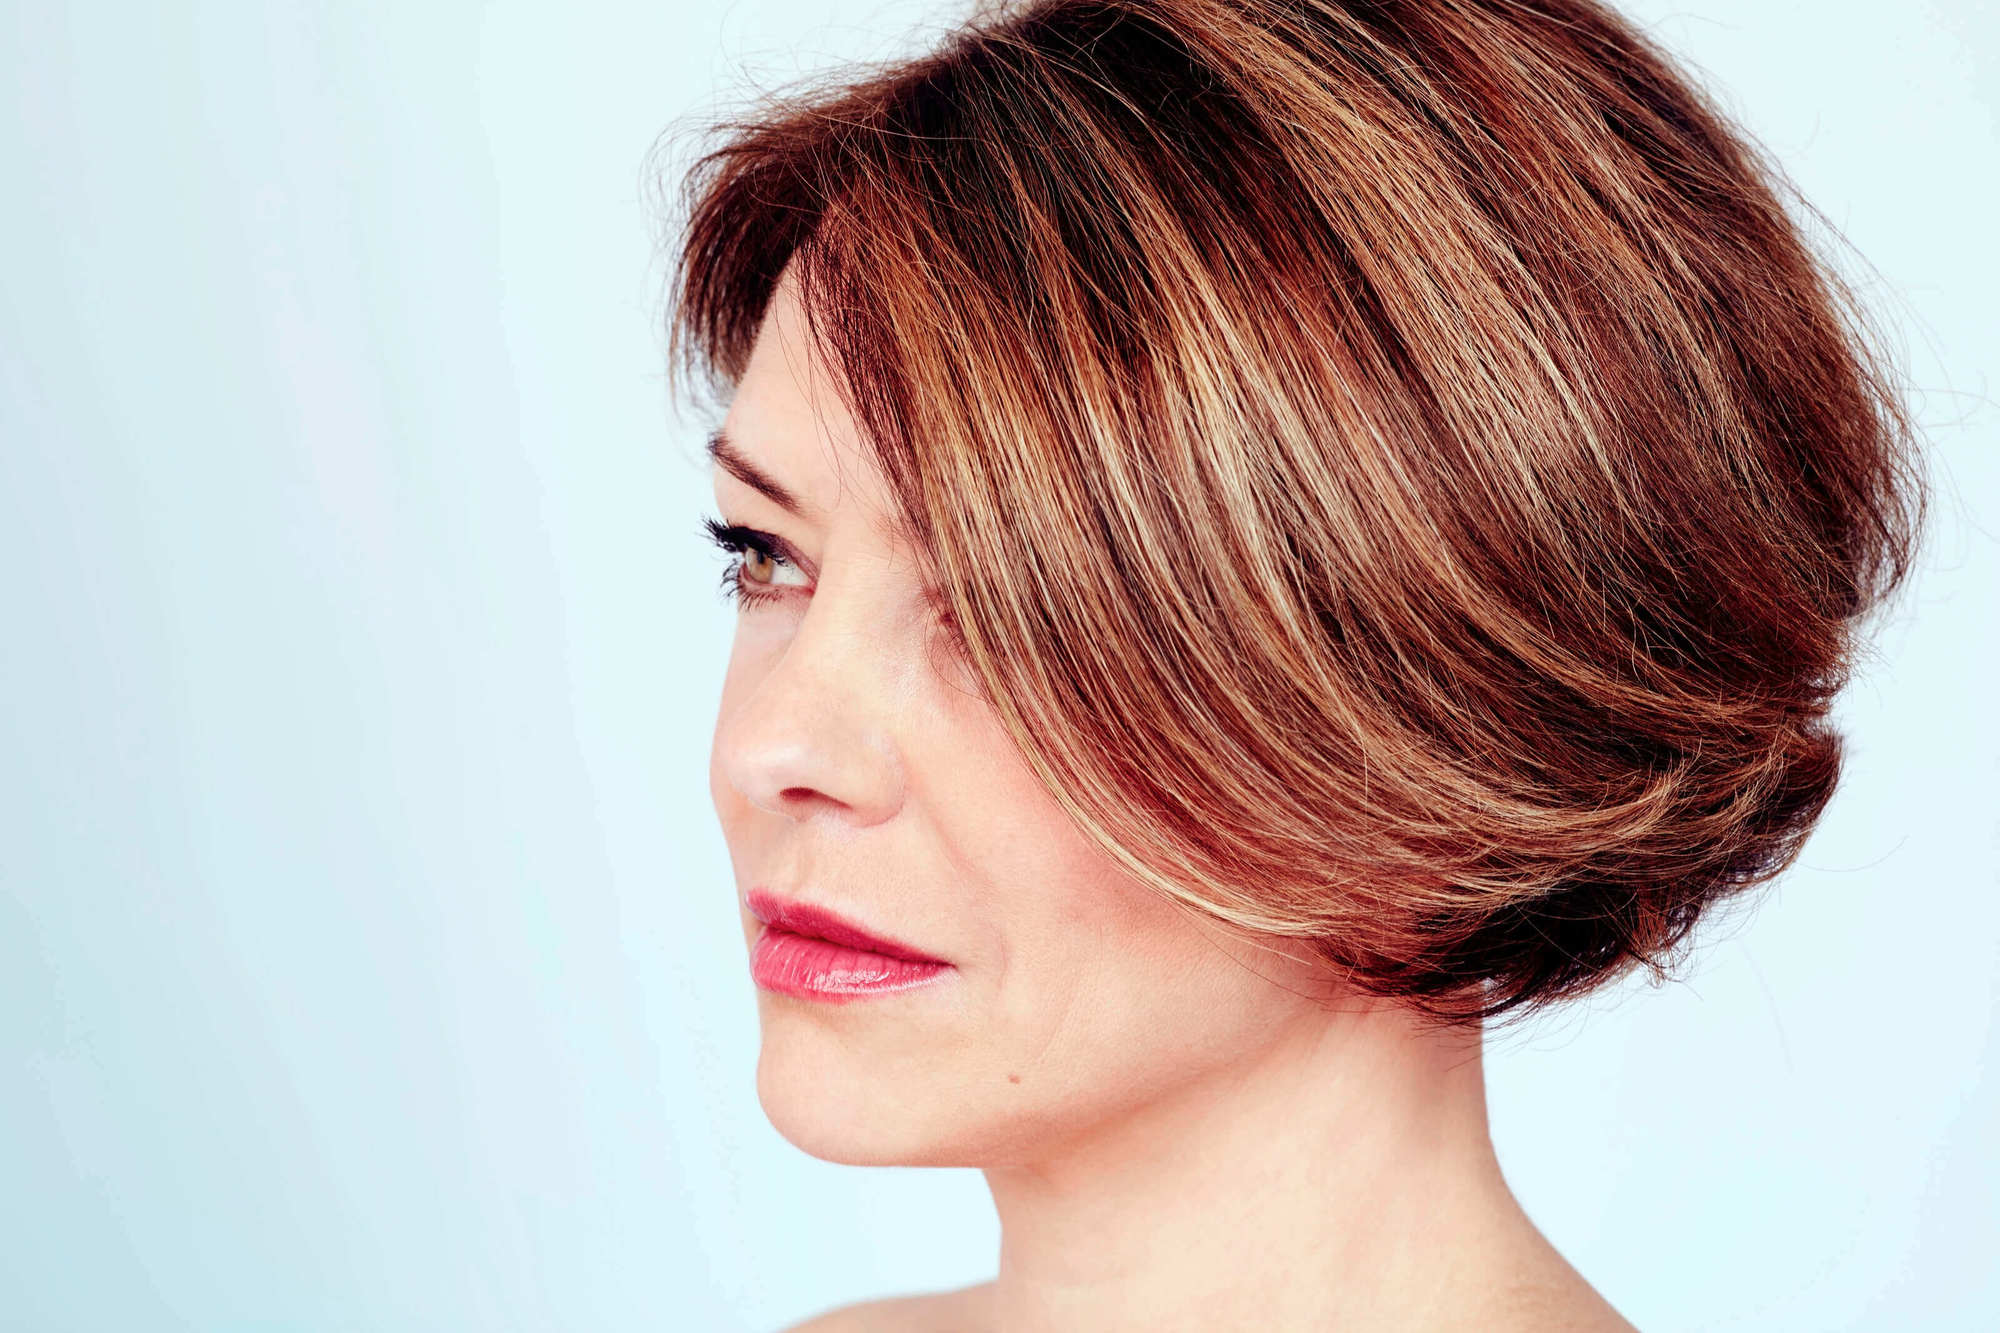 5 Cool Shoulder Length And Short Haircuts For Women Over 40